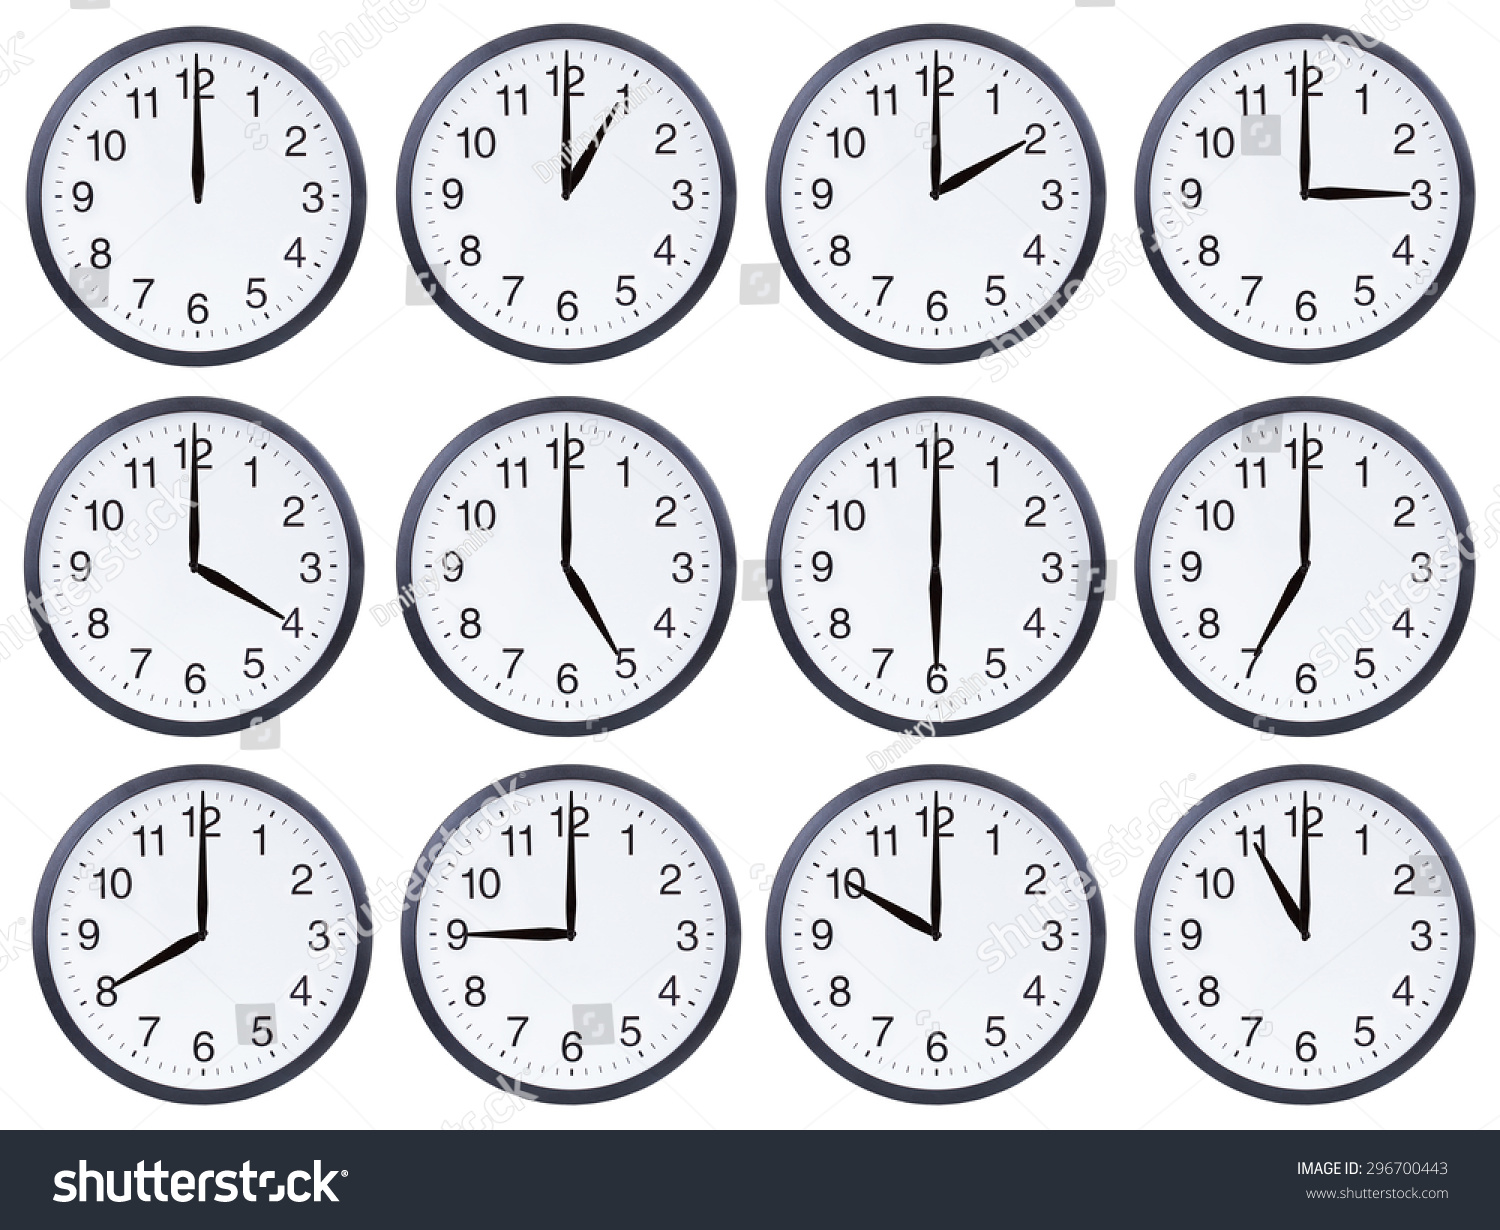 Image Of A Clock Showing Time